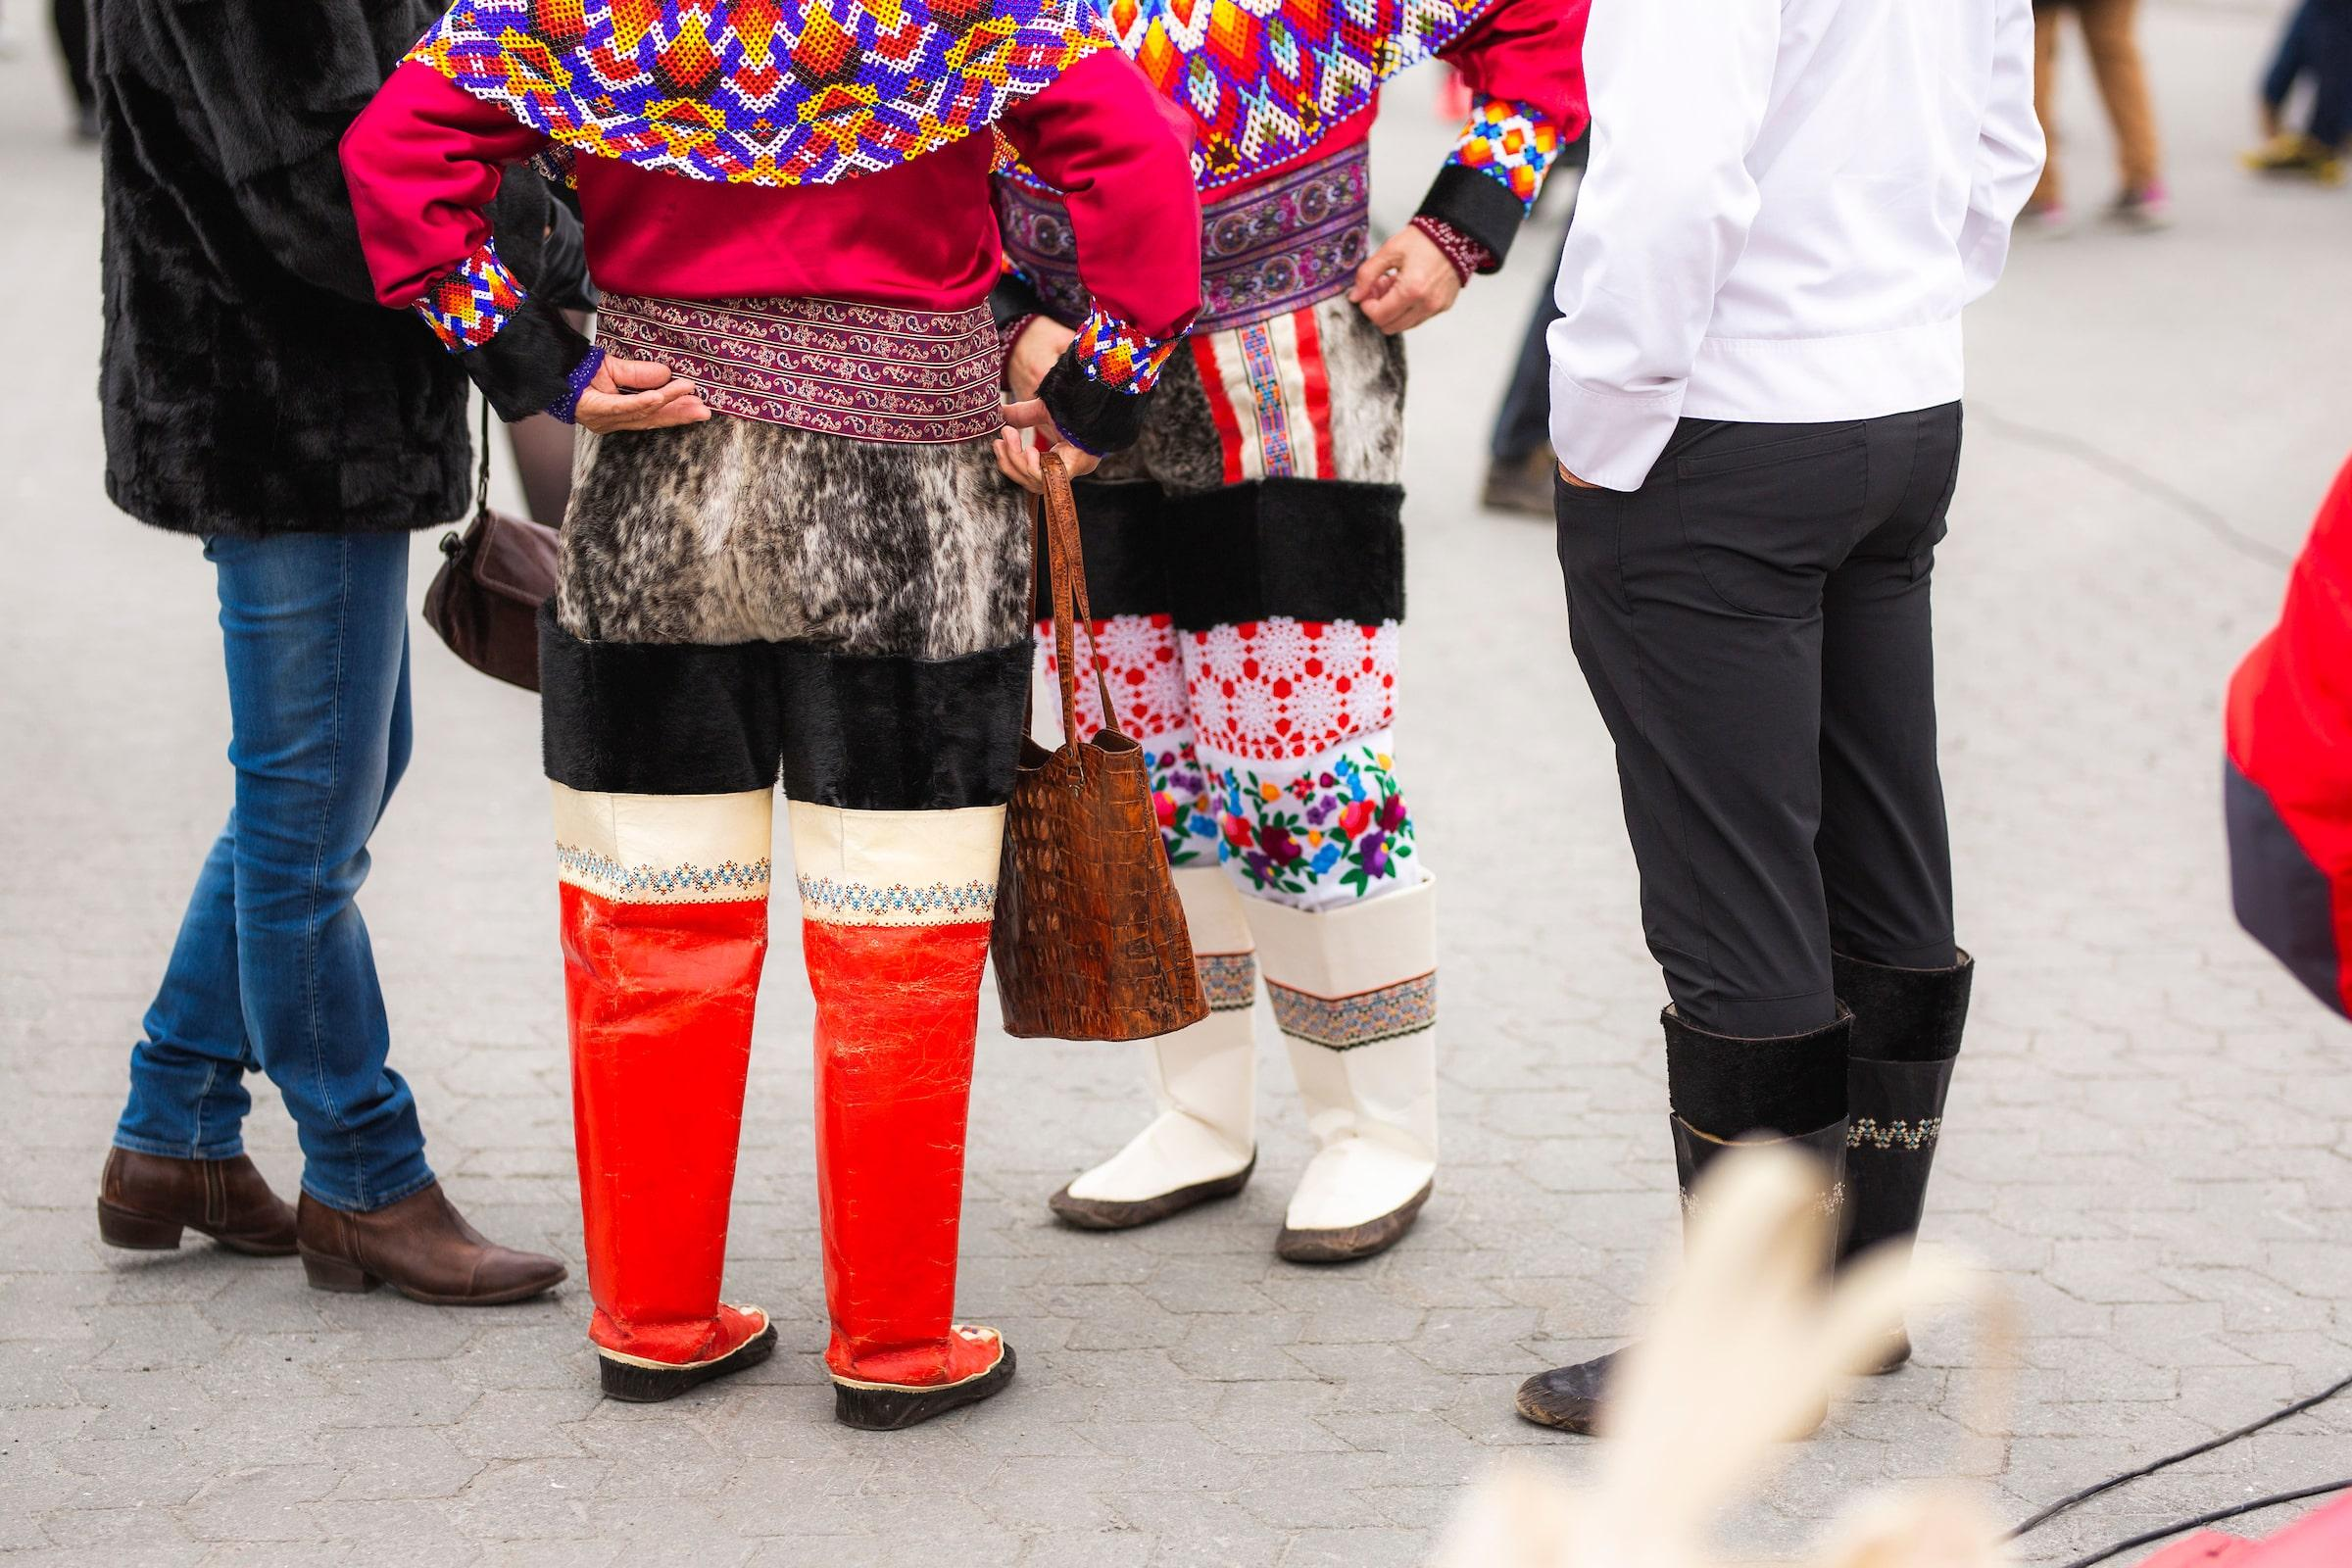 National Clothing. National Day Gathering By The Old Harbour. Photo by Aningaaq R Carlsen - Visit Greenland